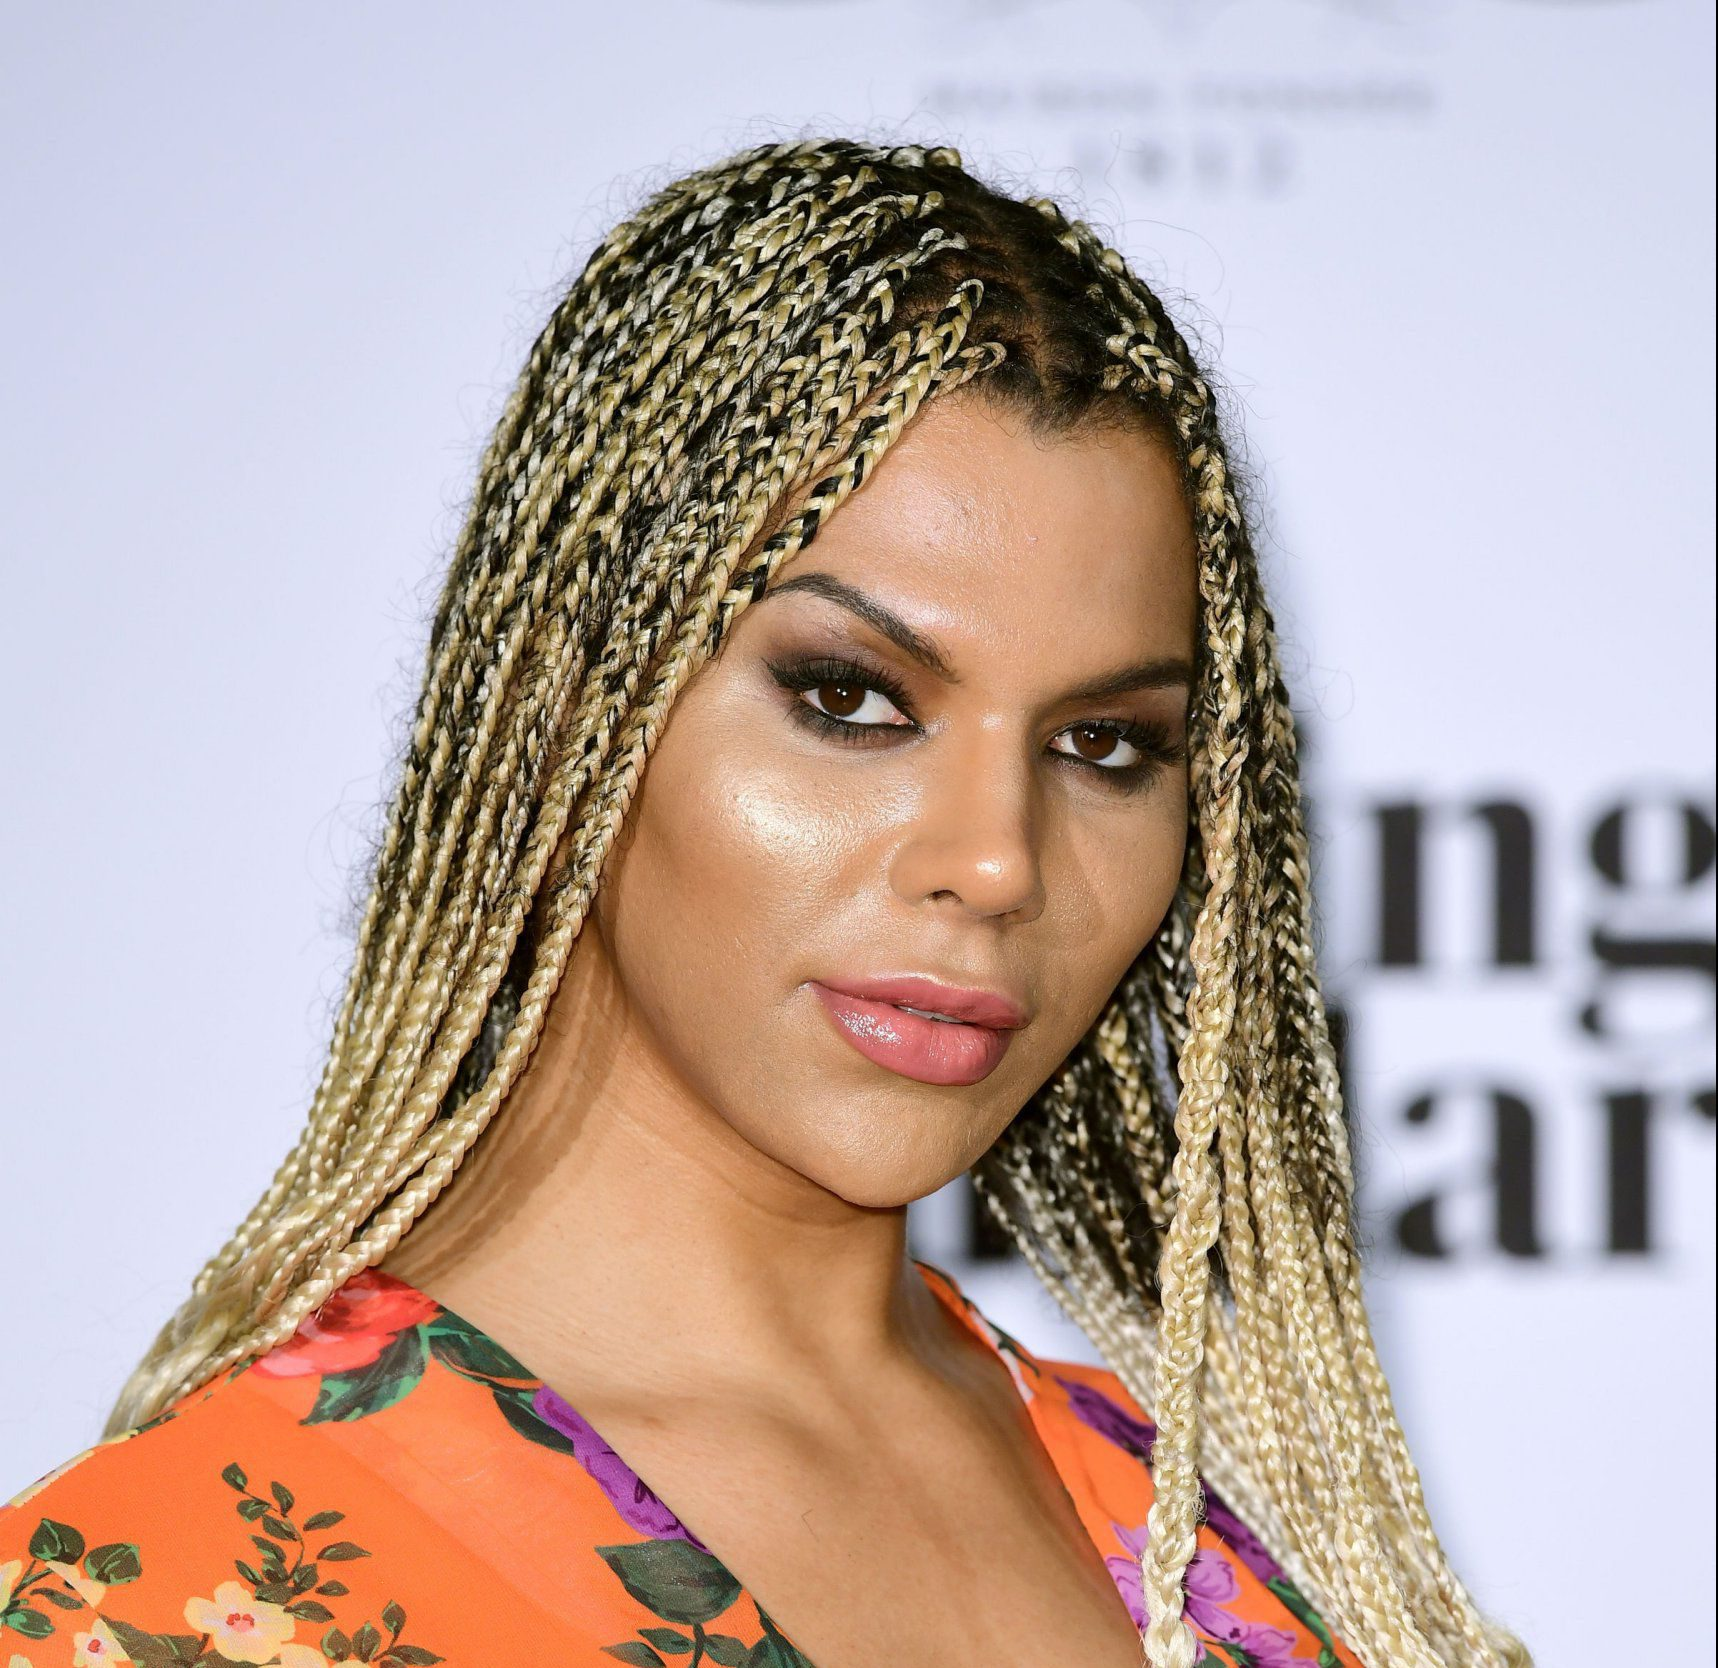 "File photo dated 19/10/2017 of Munroe Bergdorf, as the transgender former L'Oreal Paris model who was sacked by the cosmetics giant for saying ""all white people"" are racist has been appointed by a Labour frontbencher to an advisory panel. PRESS ASSOCIATION Photo. Issue date: Tuesday February 27, 2018. Munroe Bergdorf has been asked to sit on an LGBT+ advisory board by shadow equalities minister Dawn Butler. See PA story POLITICS Bergdorf. Photo credit should read: Ian West/PA Wire"